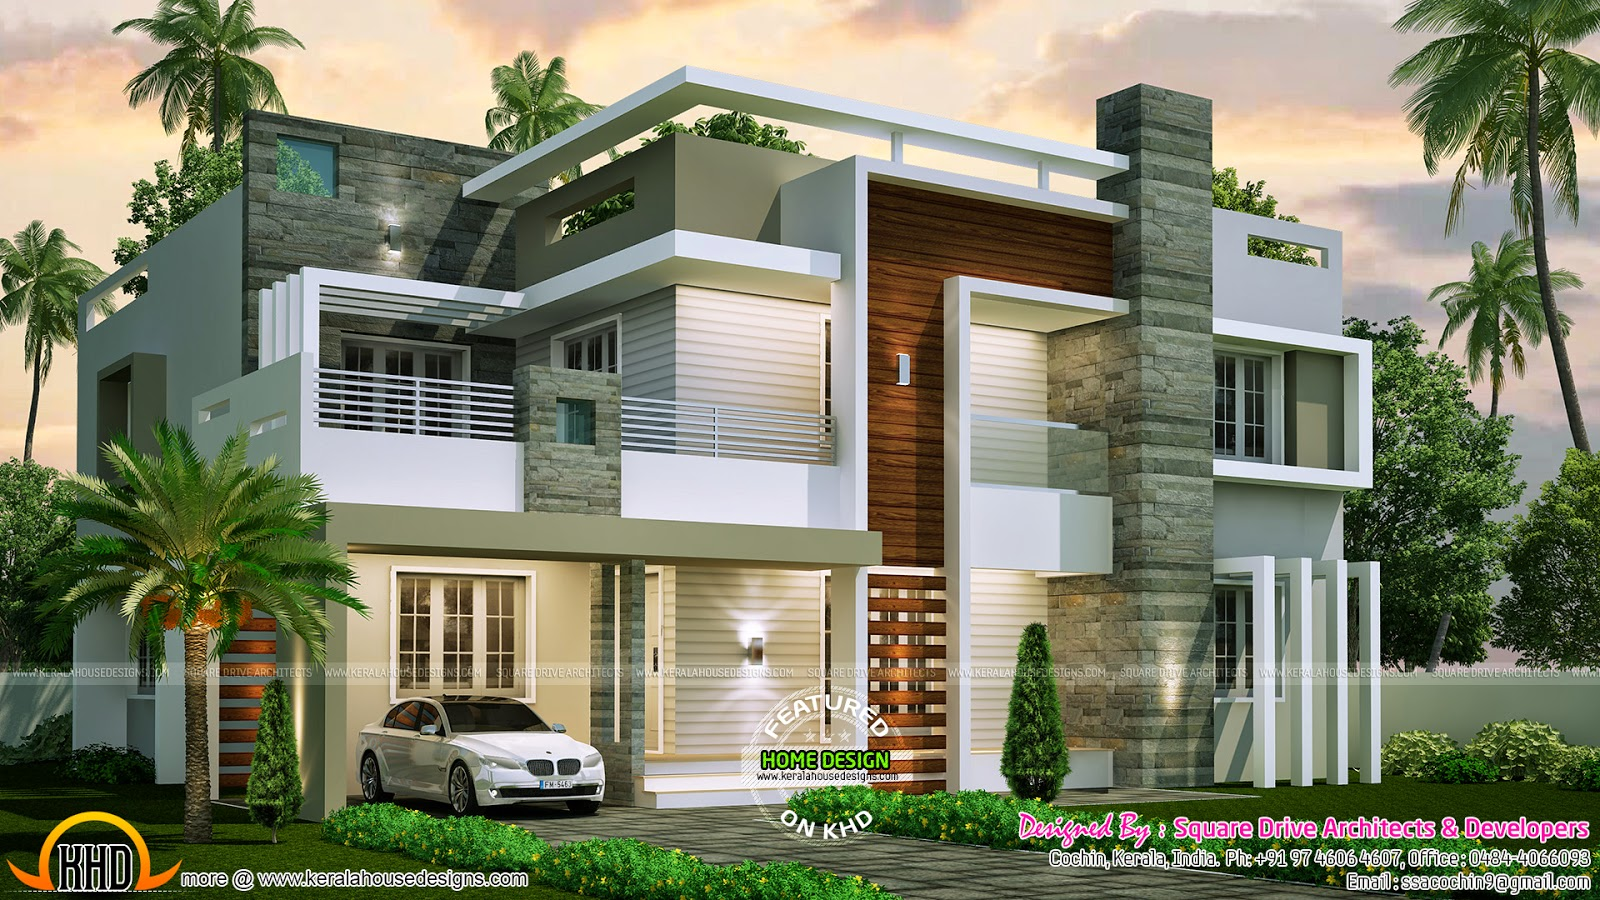 4 bedroom contemporary home design kerala home design for New modern house design